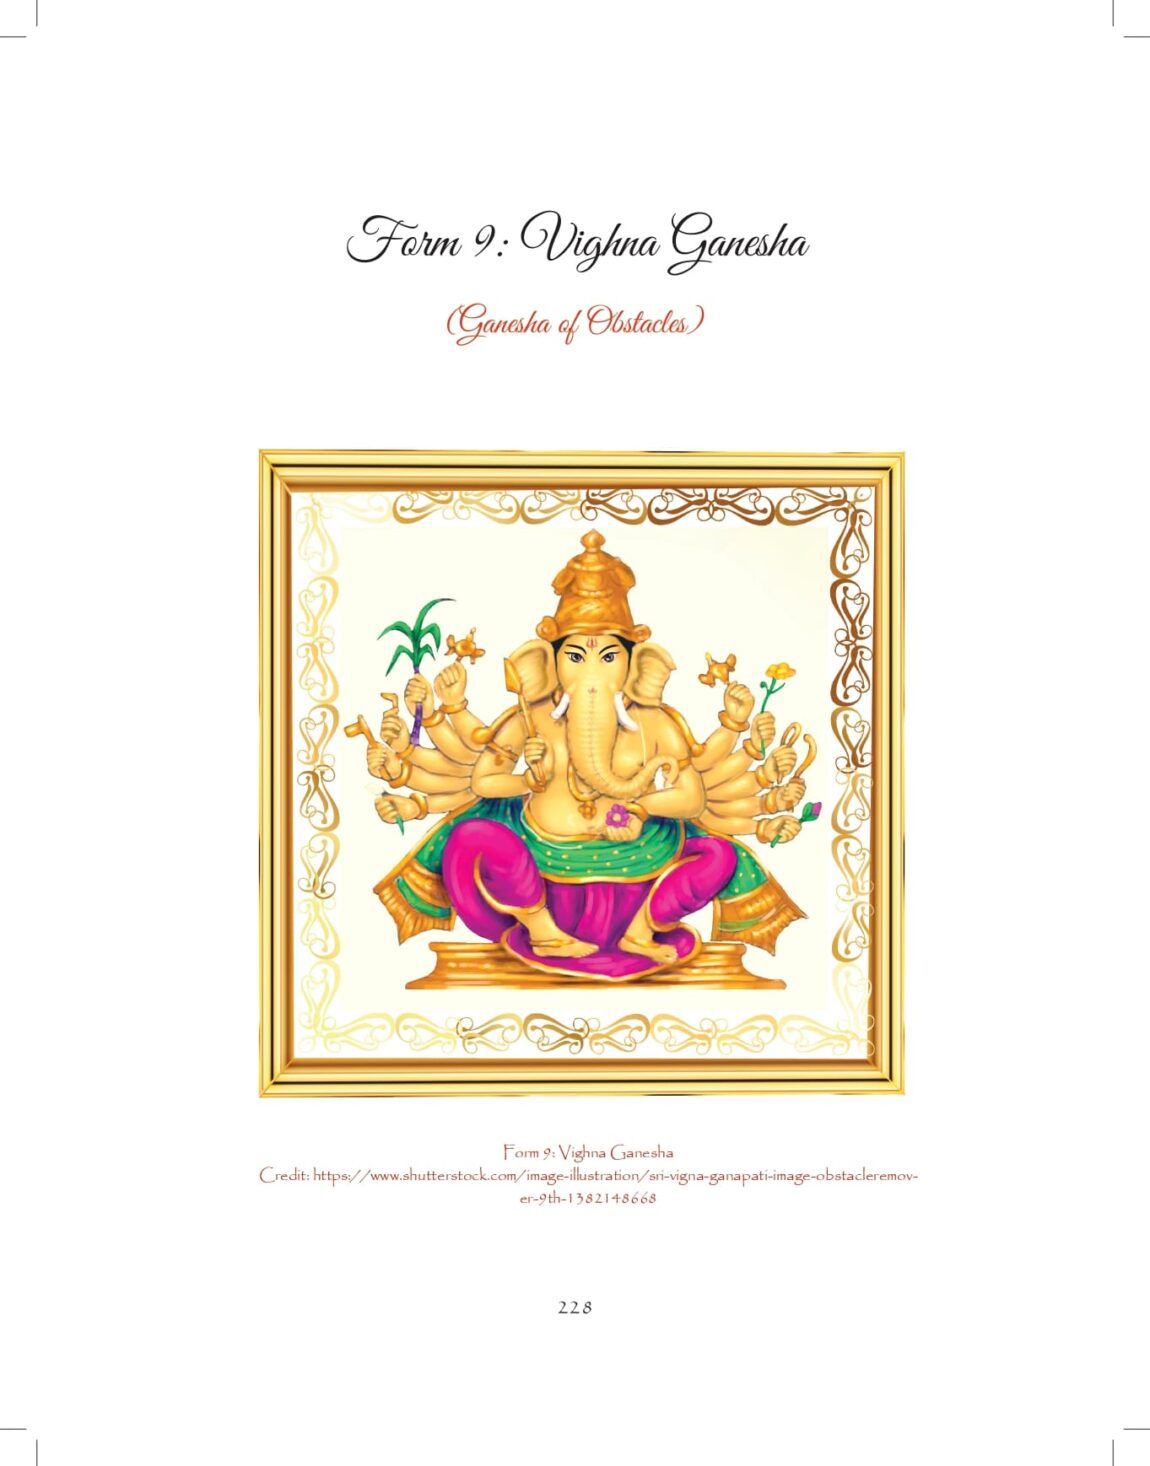 Ganesh-print_pages-to-jpg-0228.jpg